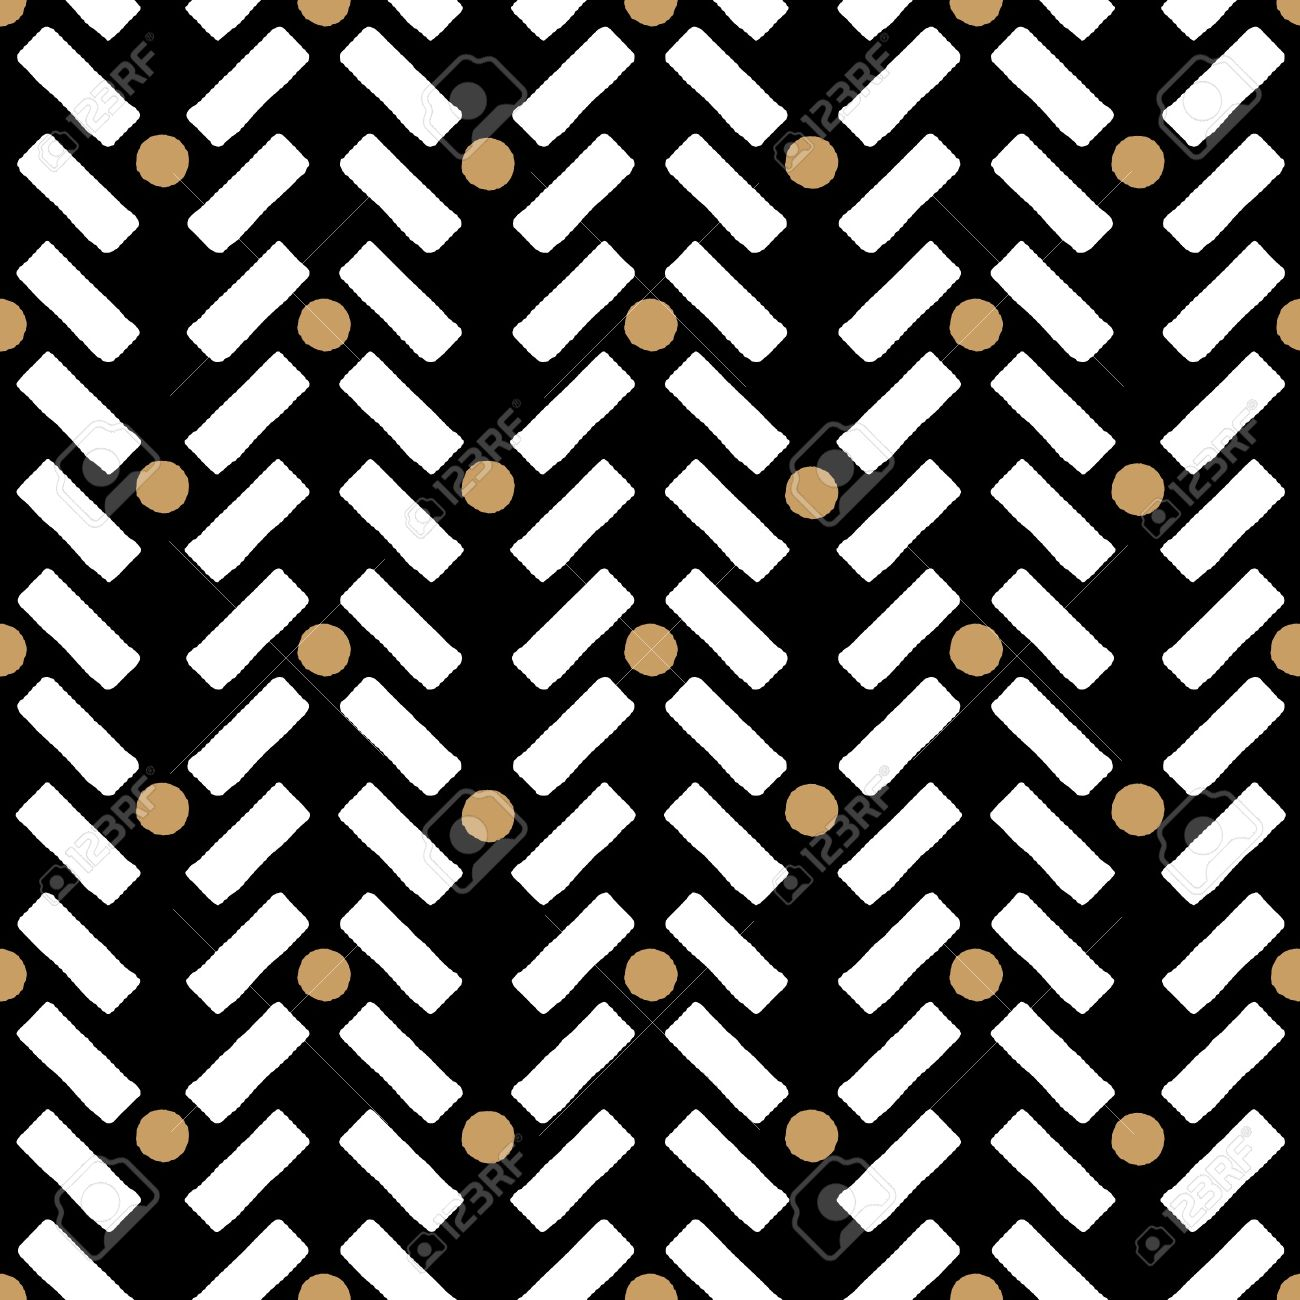 Ethnic Seamless Design Pattern Black White And Gold Customizable